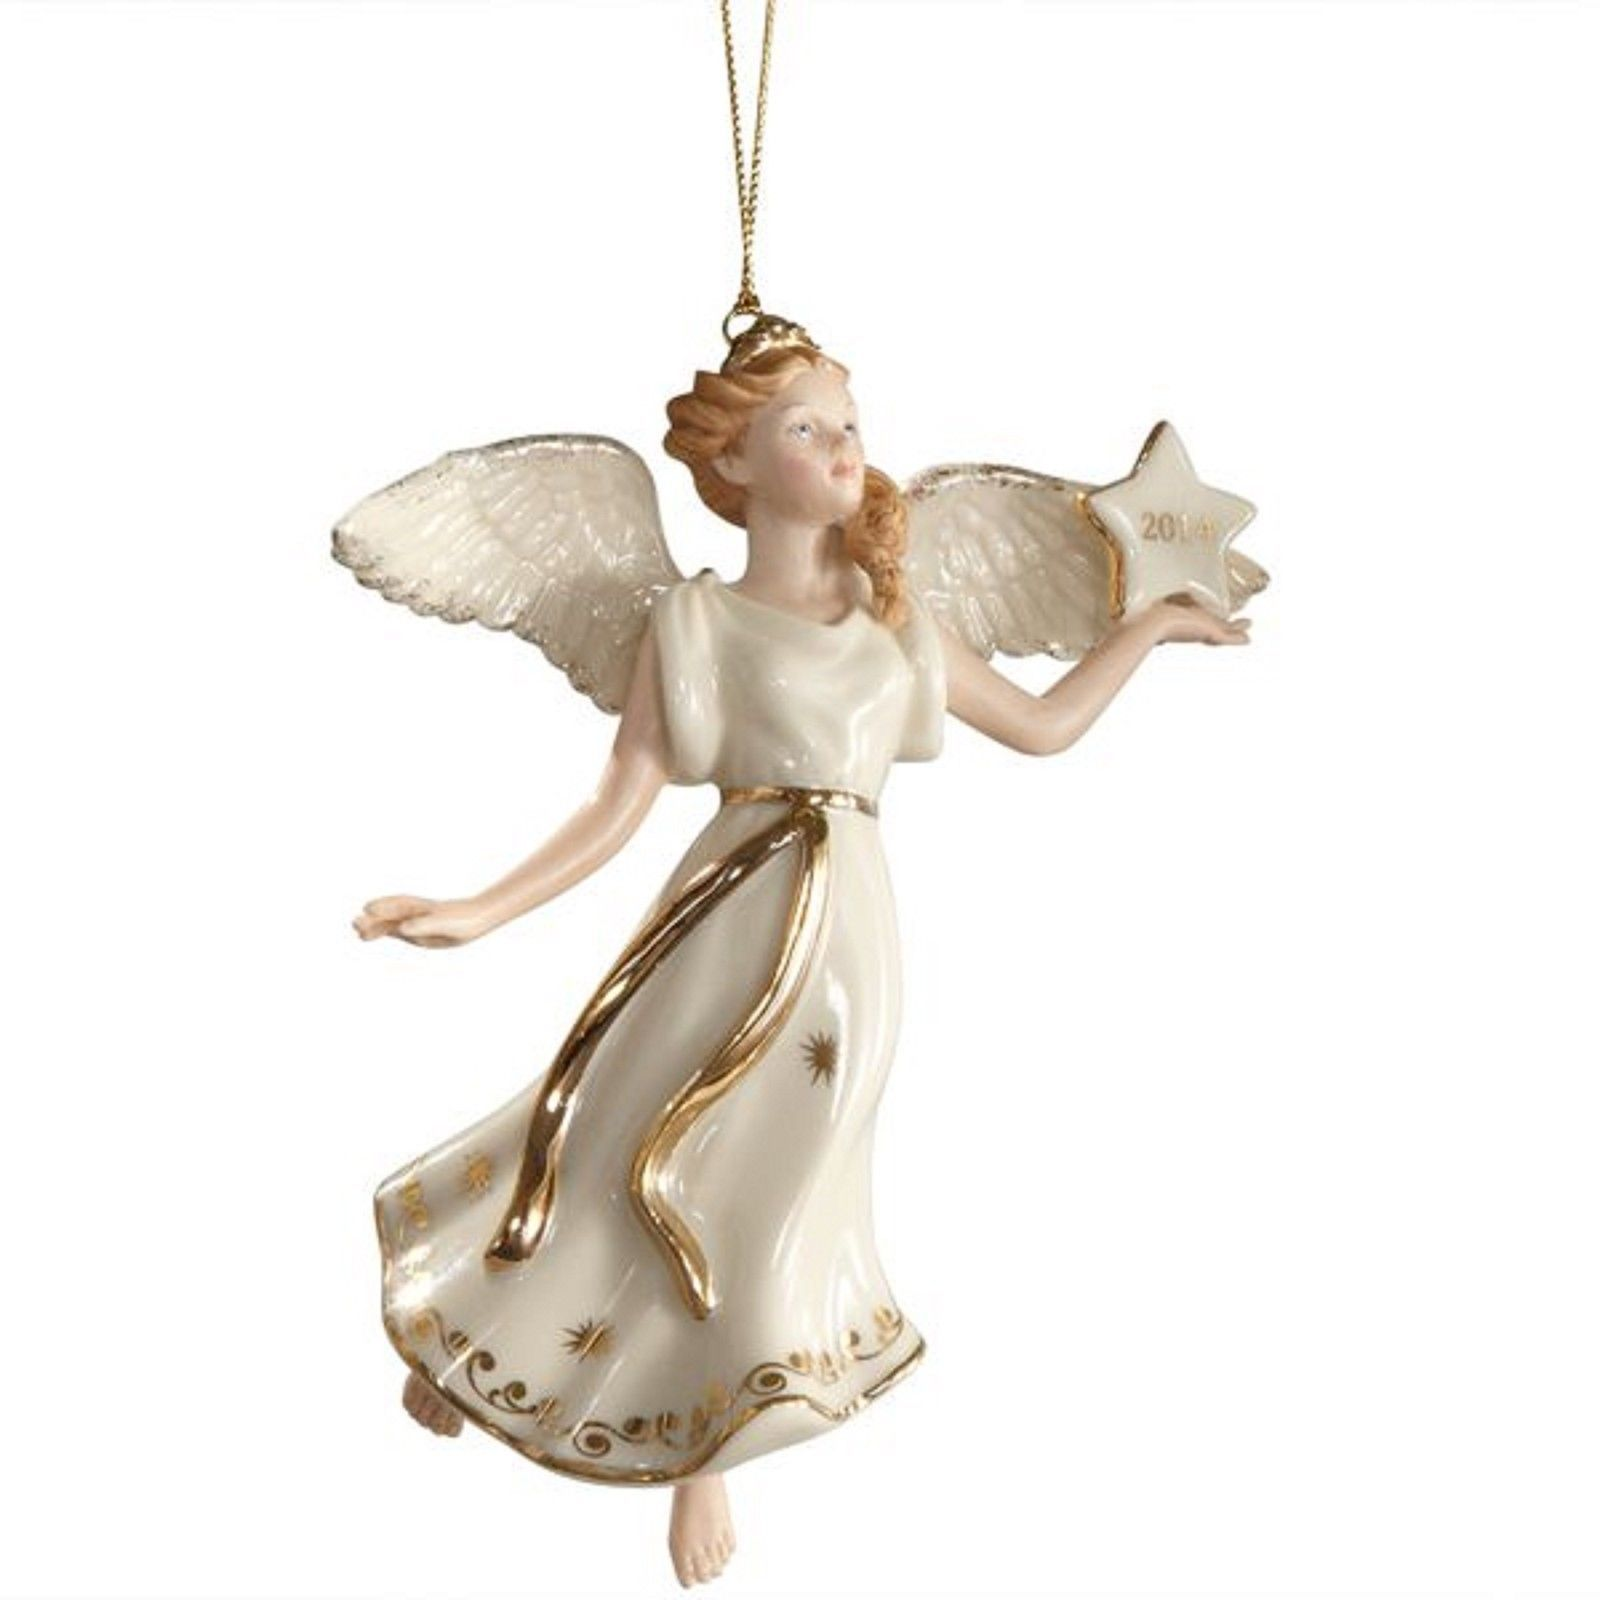 Lenox 2014 Angel Figurine Ornament Annual Wings of Glory Christmas Blonde NEW